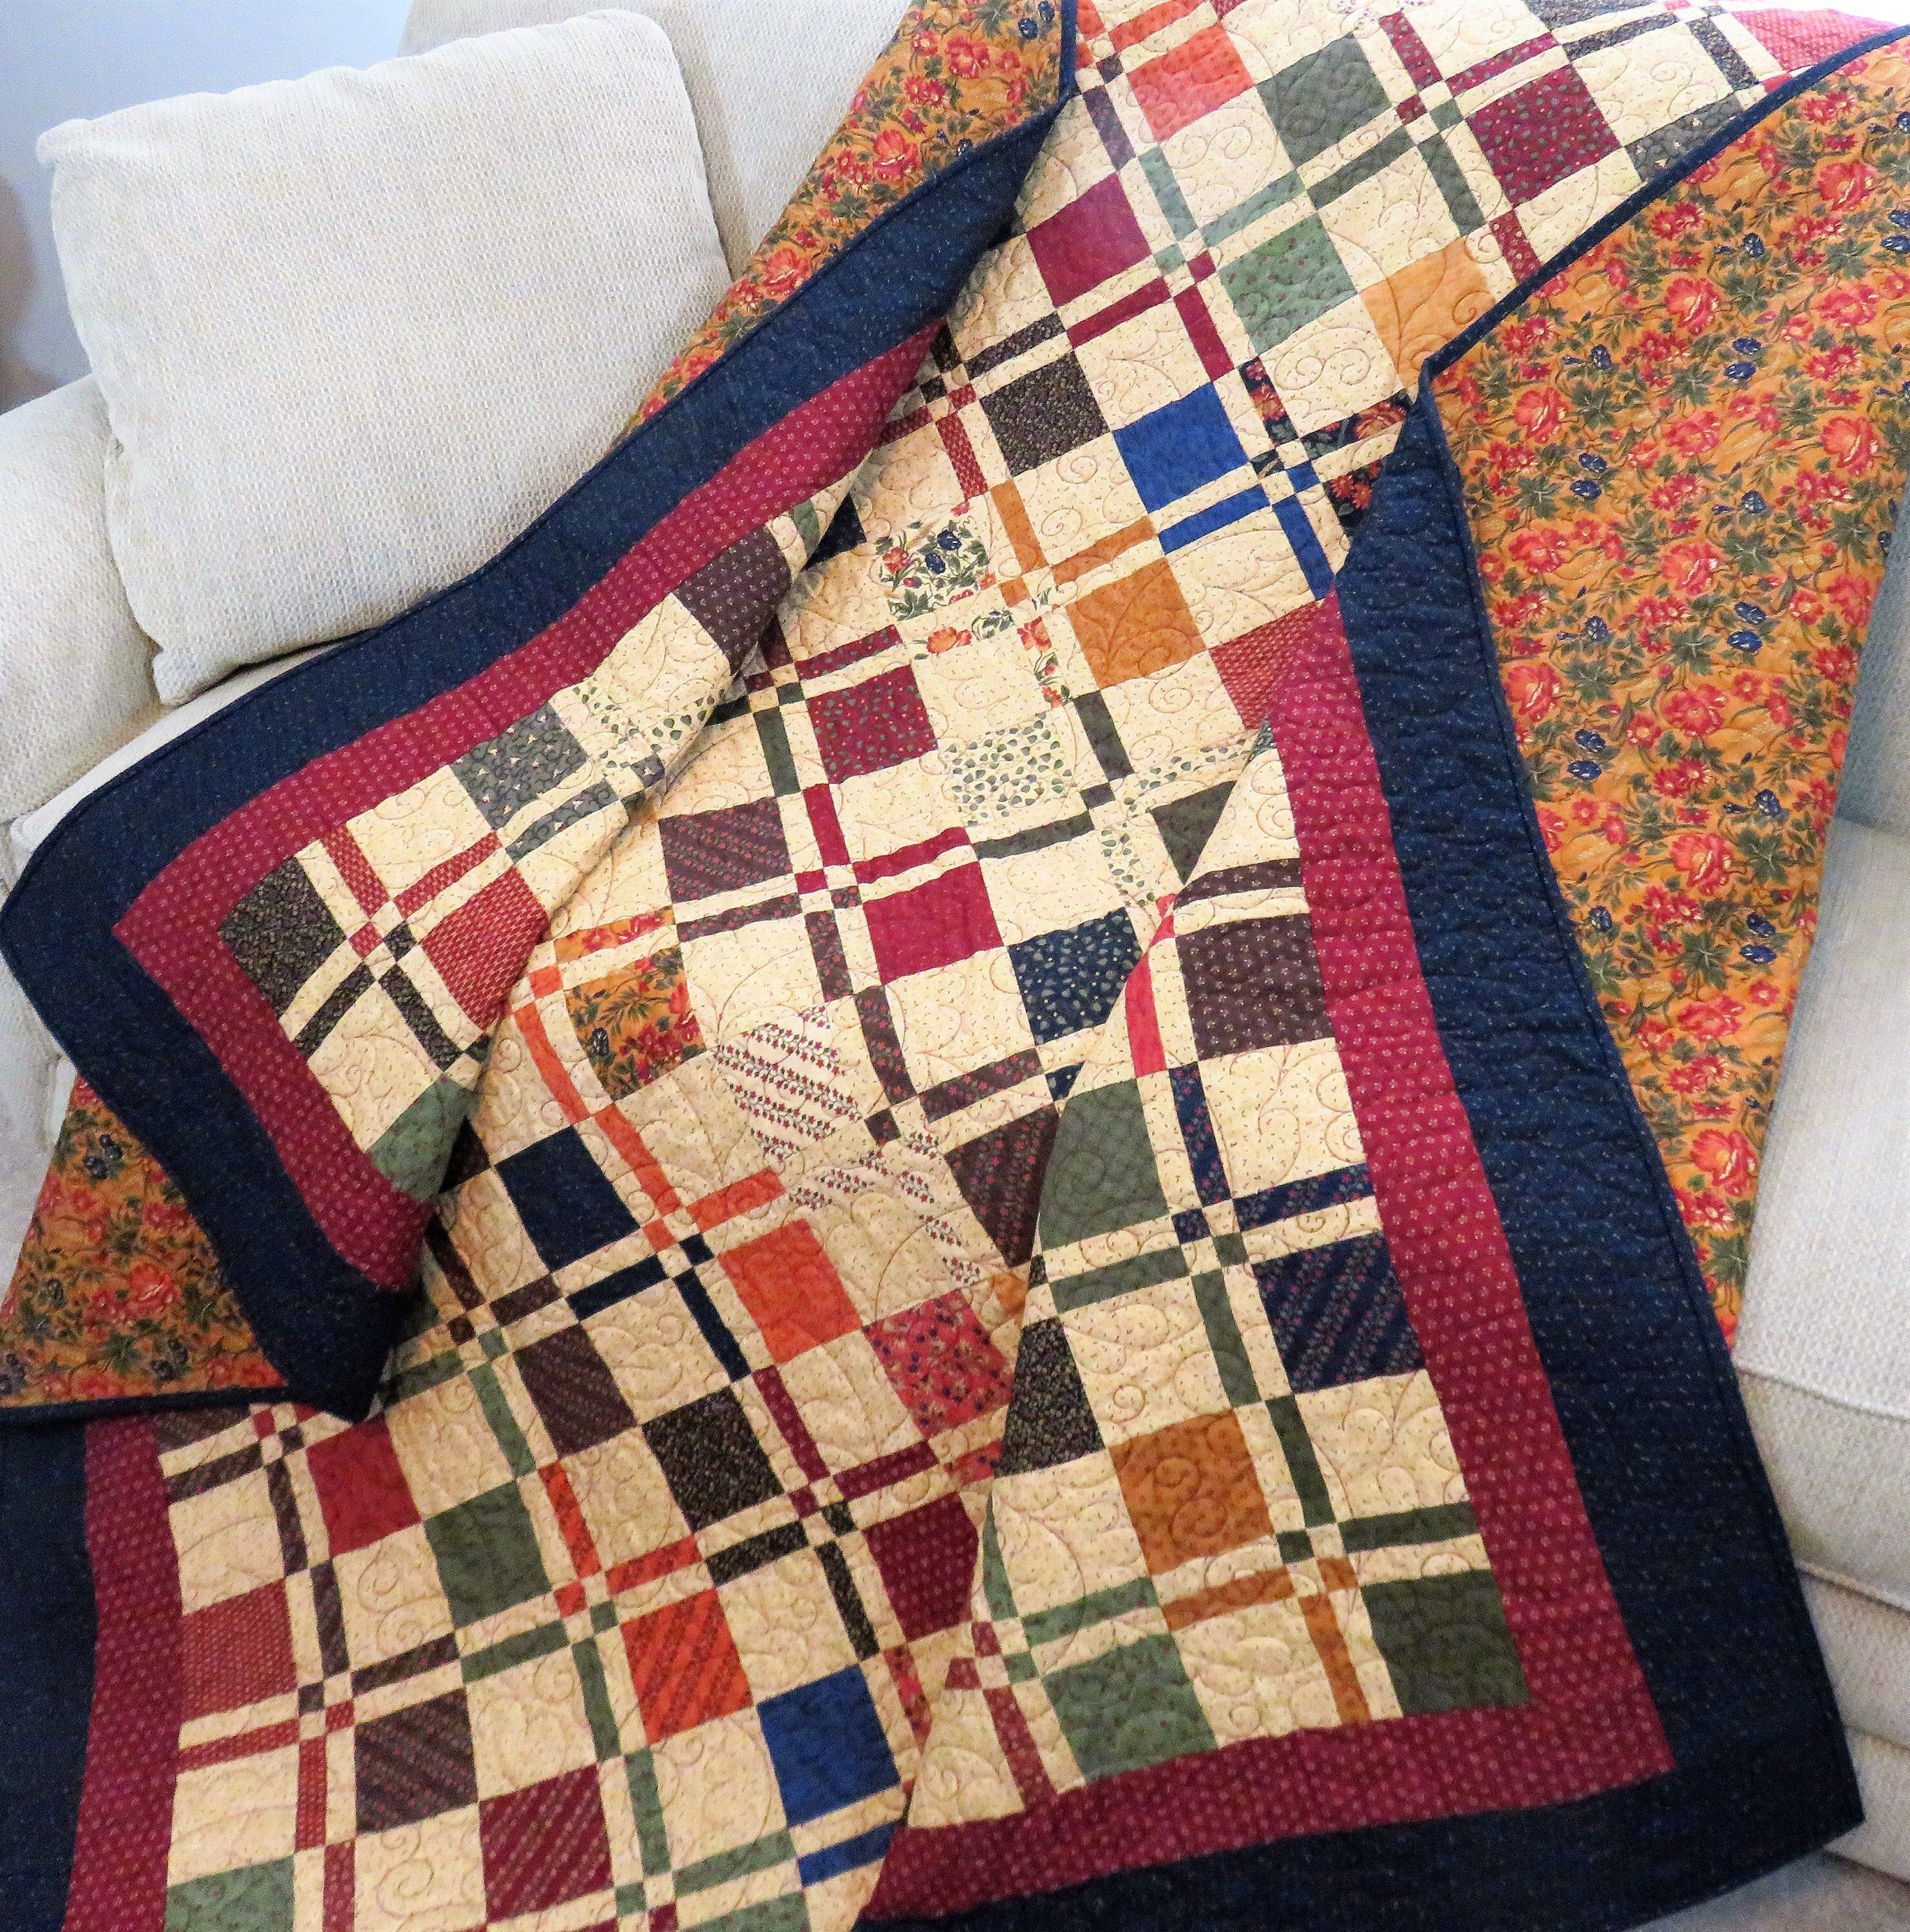 Handmade Quilt For Sale Twin Size Quilt Full Size Coverlet Etsy In 2020 Handmade Quilts For Sale Twin Quilt Size Quilts For Sale